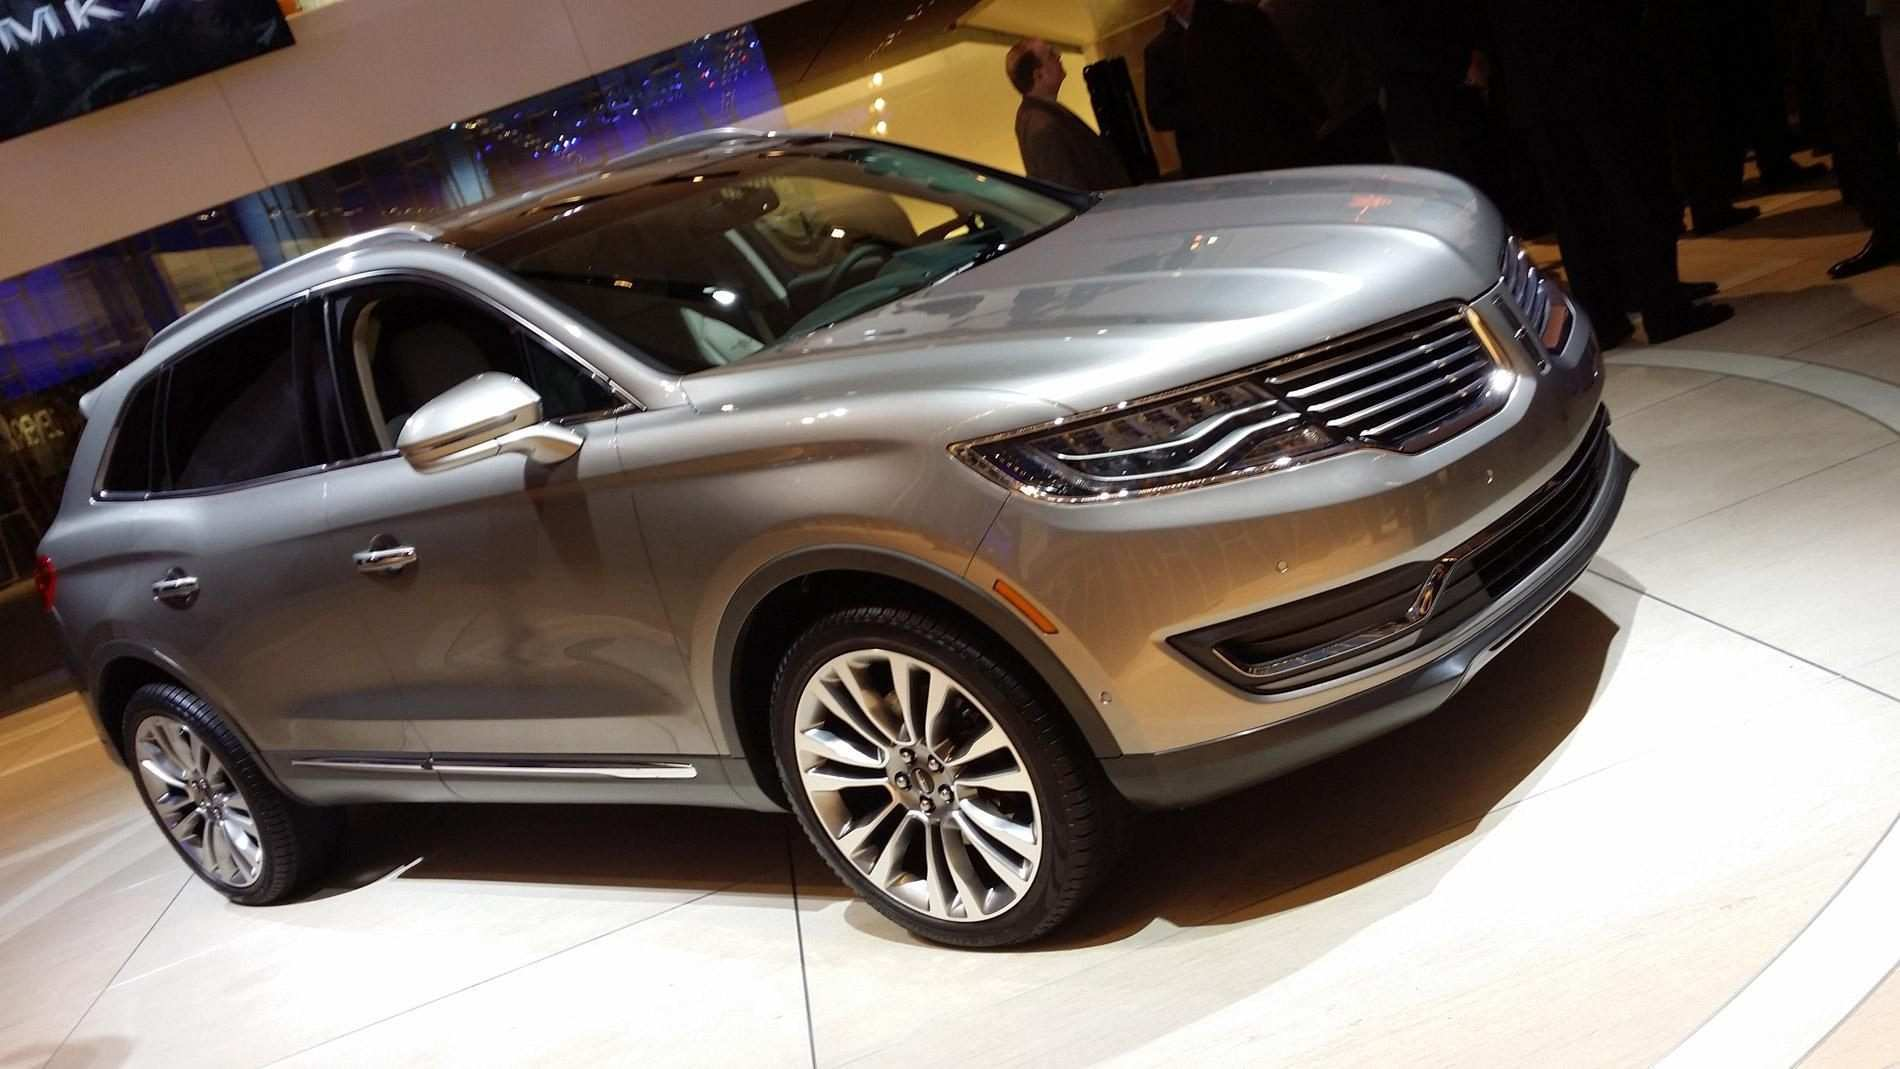 48 Gallery of 2020 Lincoln Mkx At Beijing Motor Show Performance and New Engine for 2020 Lincoln Mkx At Beijing Motor Show